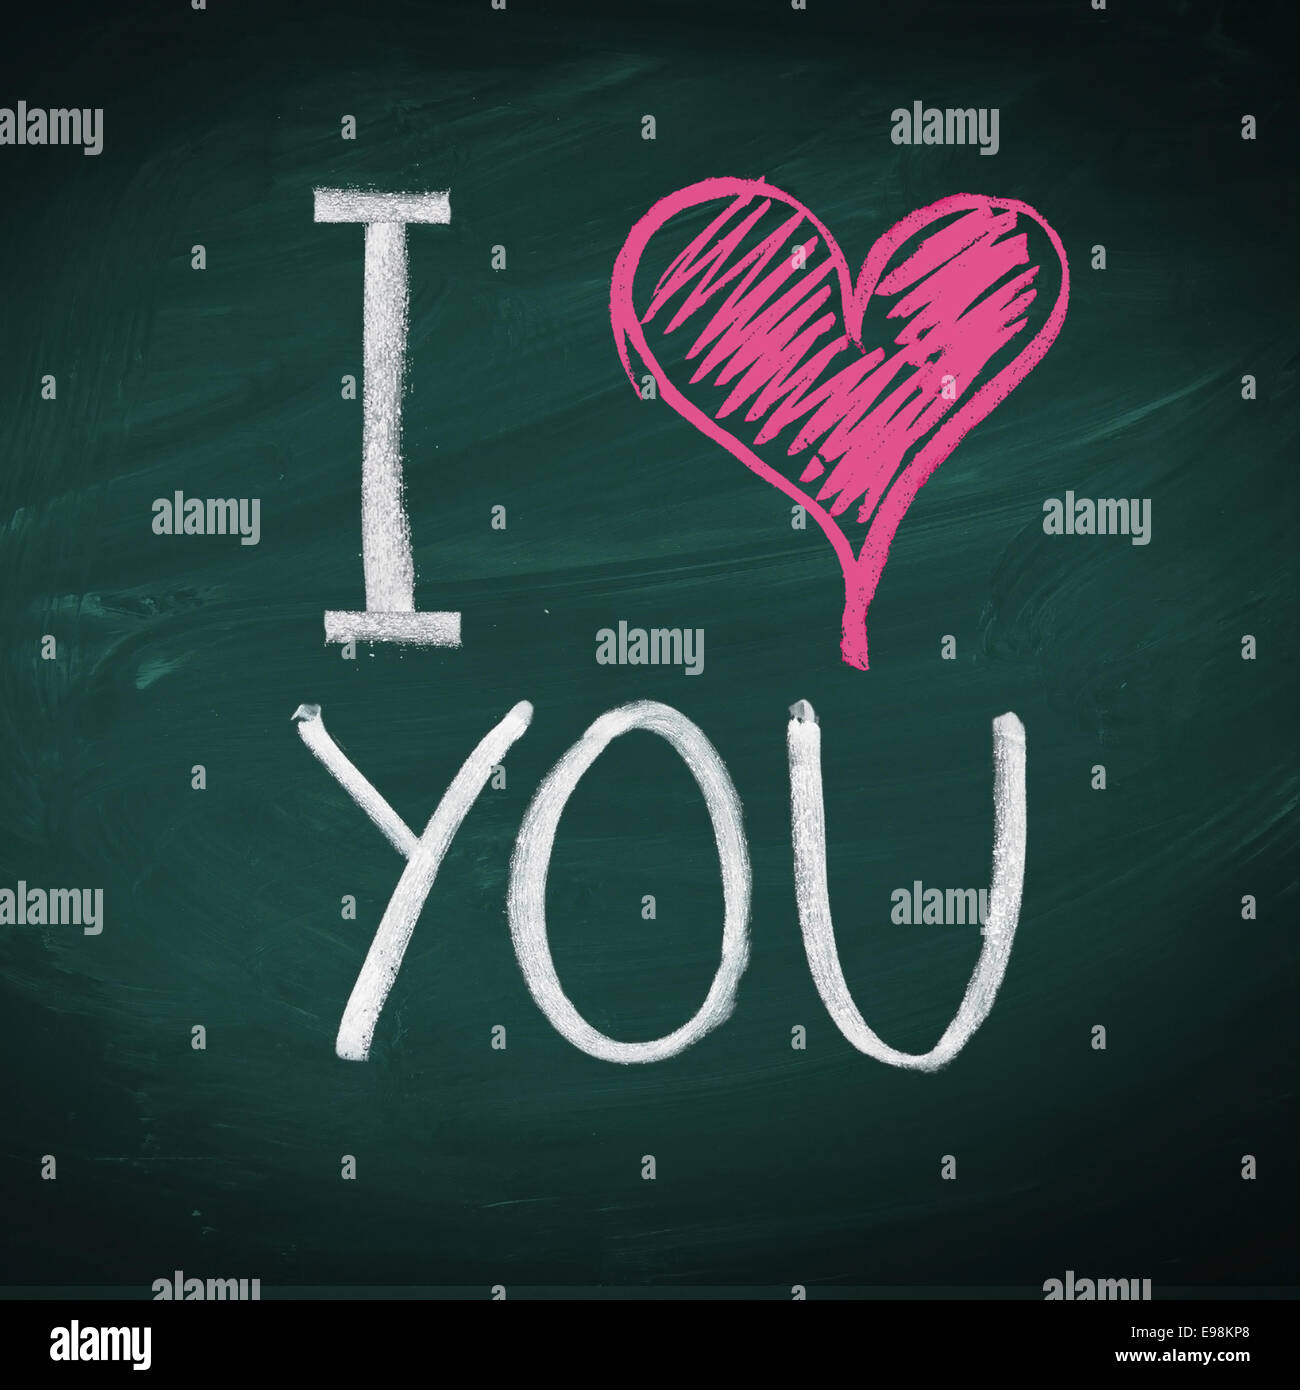 I Love You Handwritten Message On A Chalkboard With An Illustrated